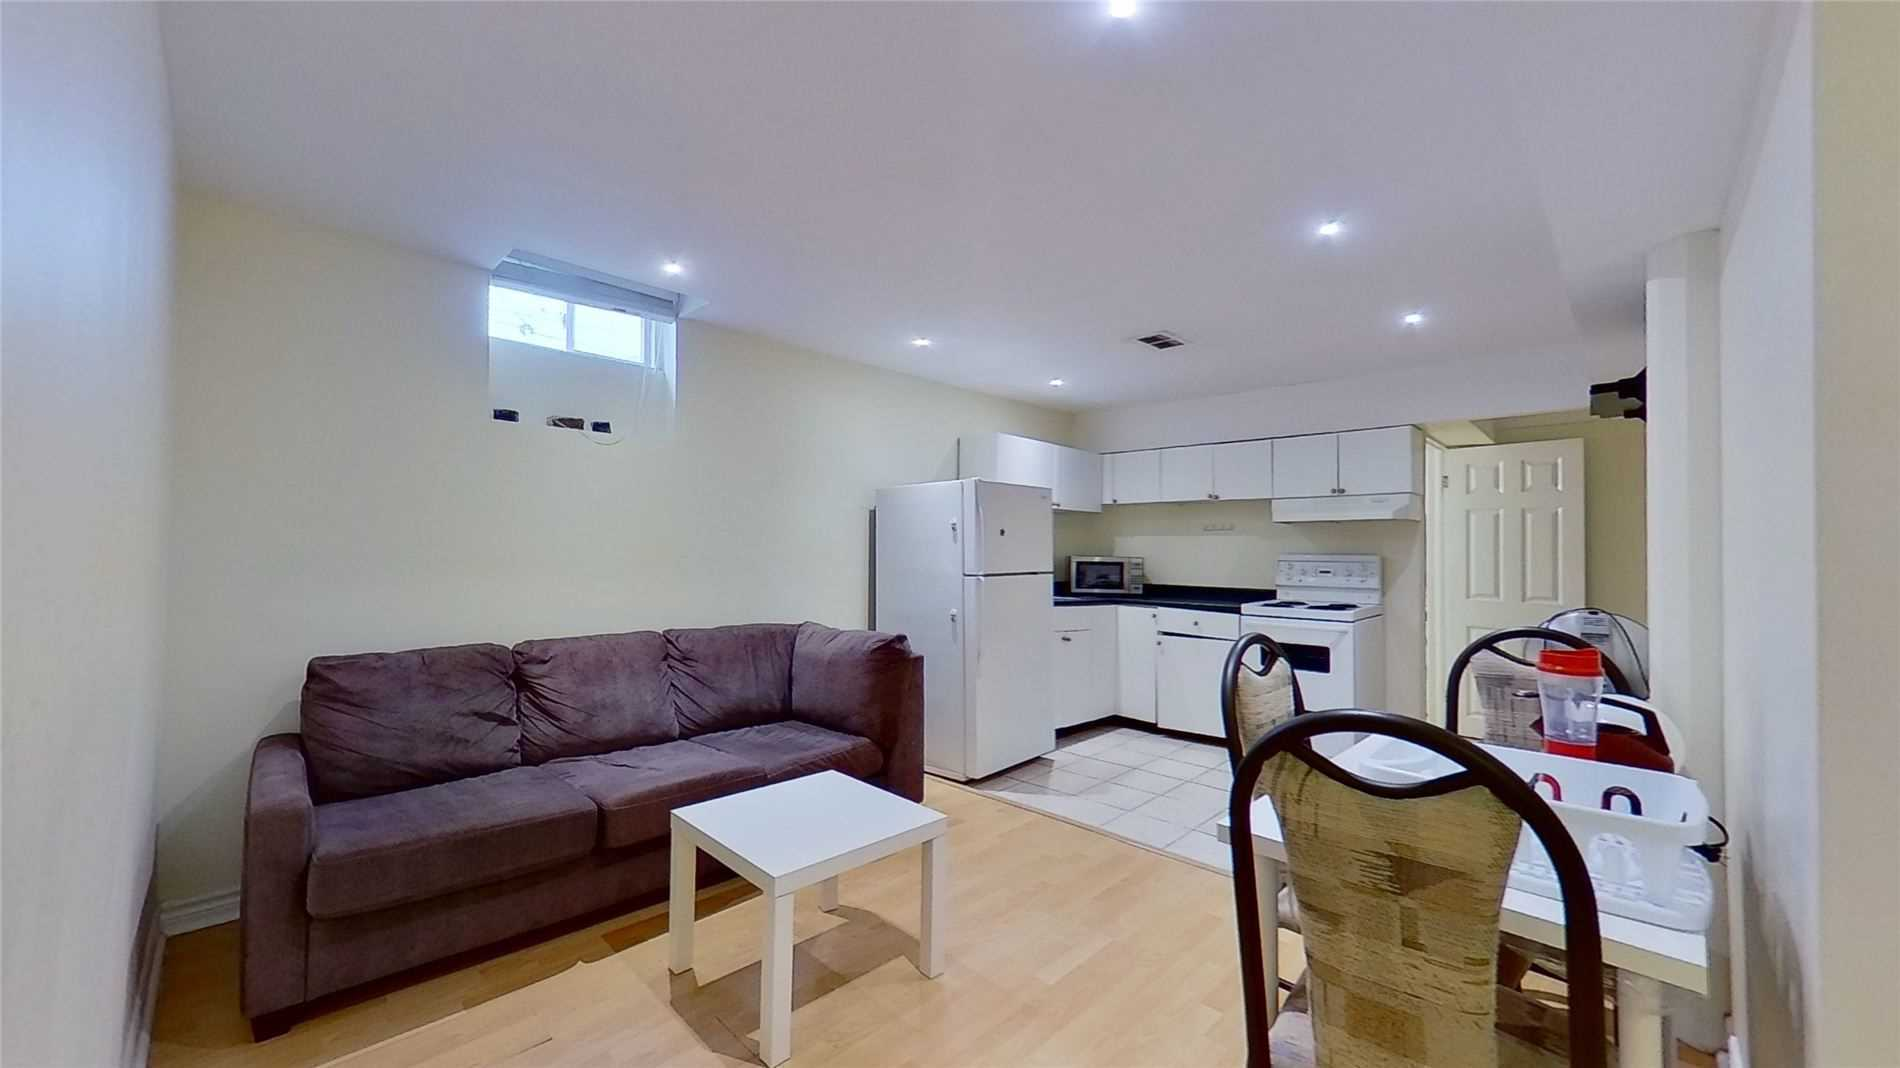 Image 9 of 16 showing inside of 2 Bedroom Detached 2-Storey for Lease at 5 Whalen Crt, Richmond Hill L4C9T5